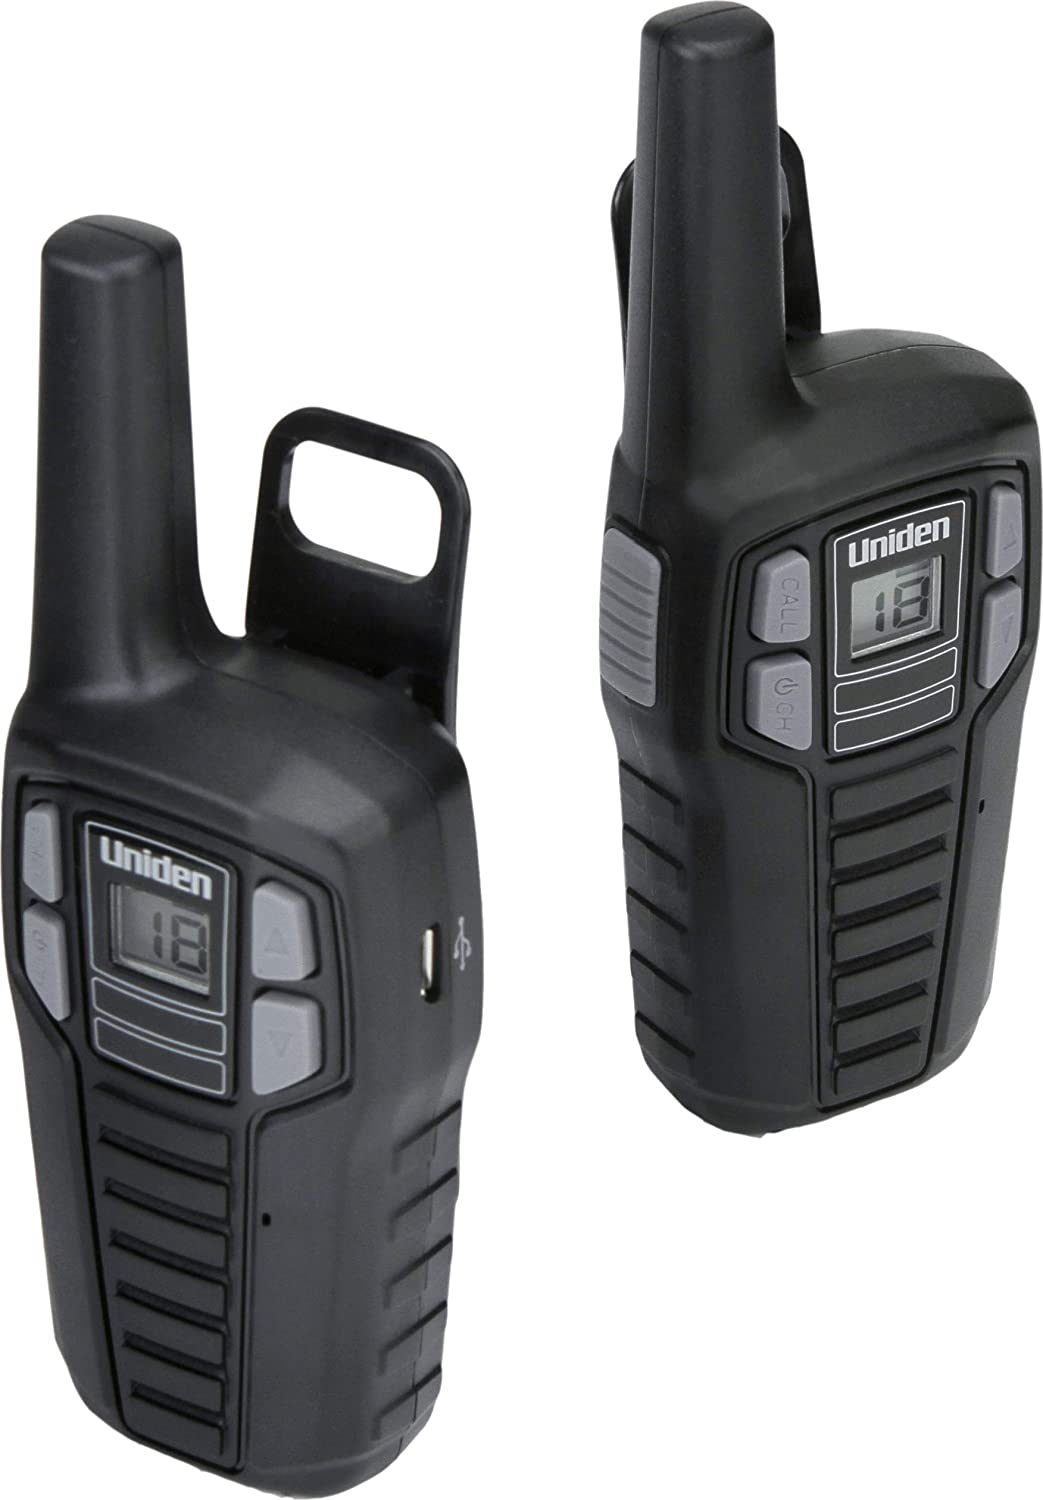 2-Pack Black Color FRS Two-Way Radio Walkie Talkies Rechargeable Batteries with Convenient Charging Cable NOAA Weather Channels Roger Beep Uniden SX167-2C Up to 16 Mile Range